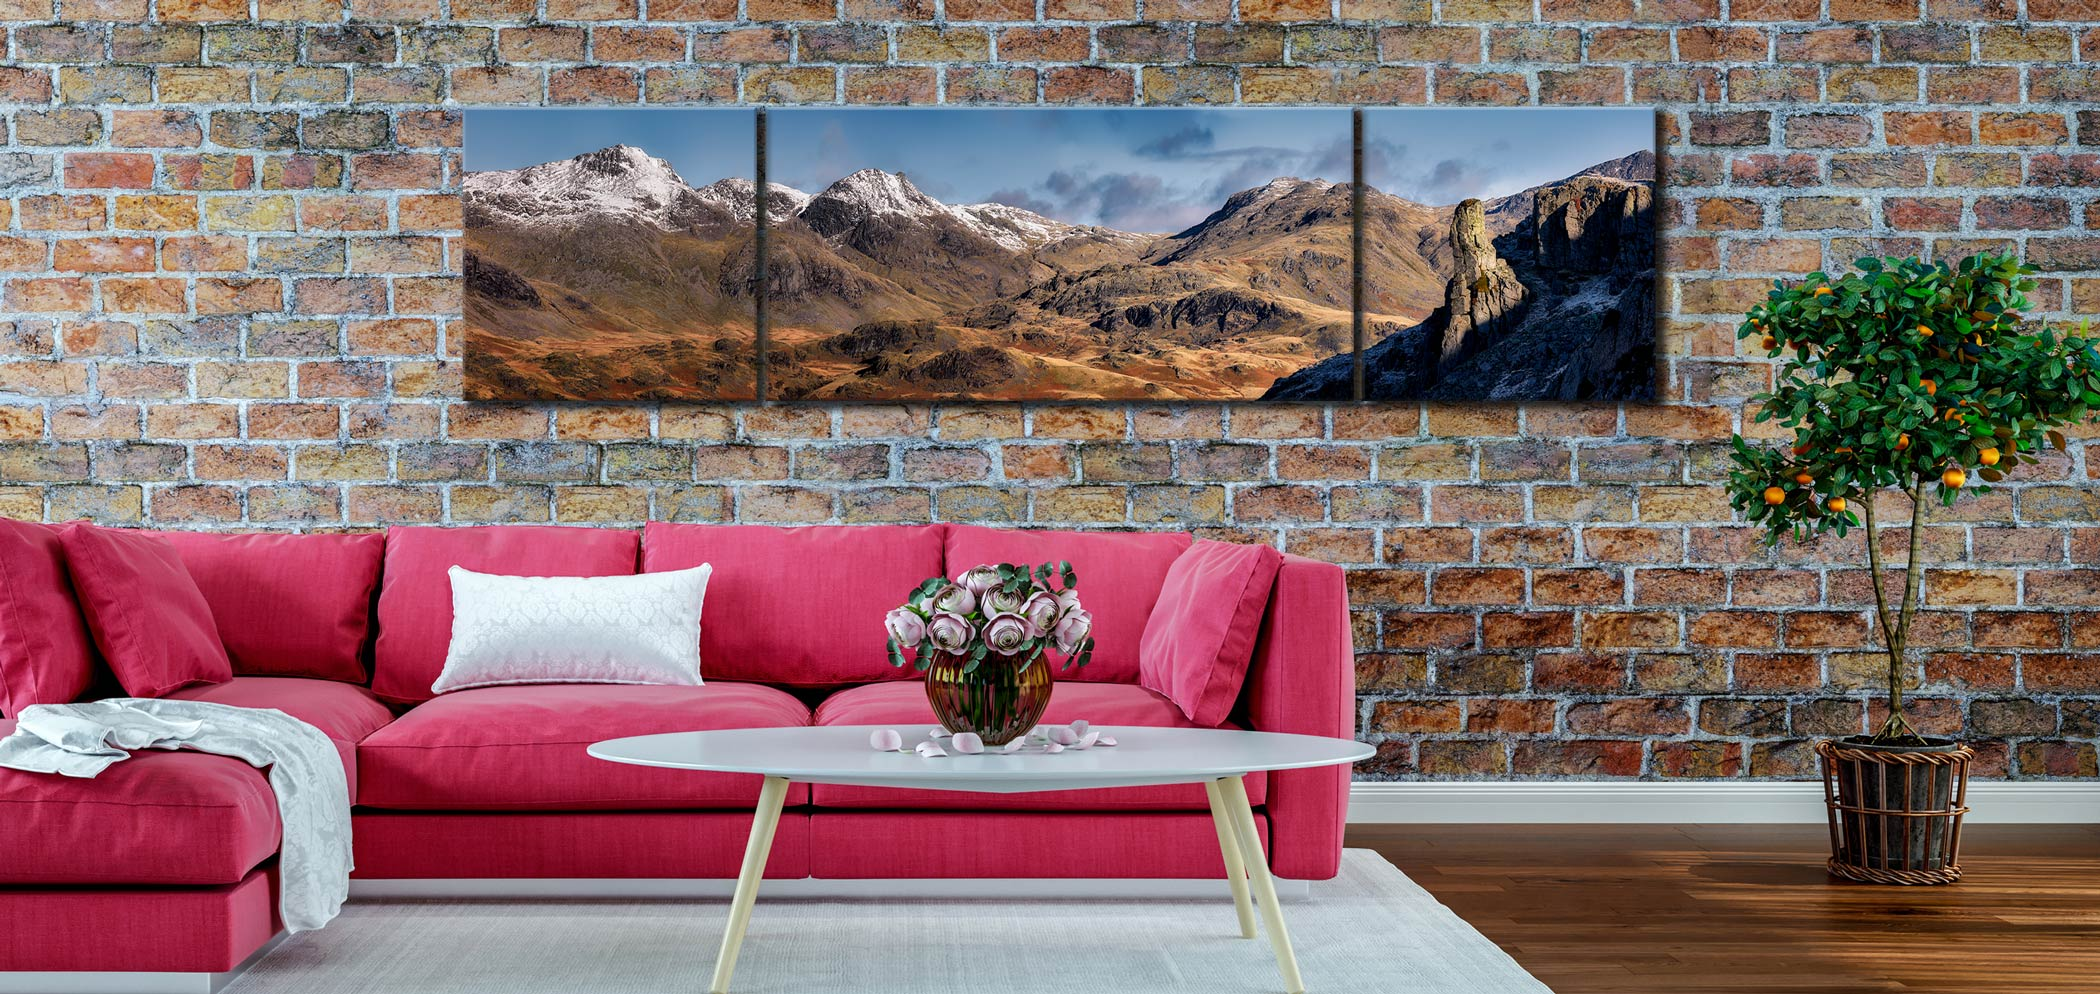 Eskdale Needle and Scafell Panorama - 3 Panel Wide Centre Canvas on Wall